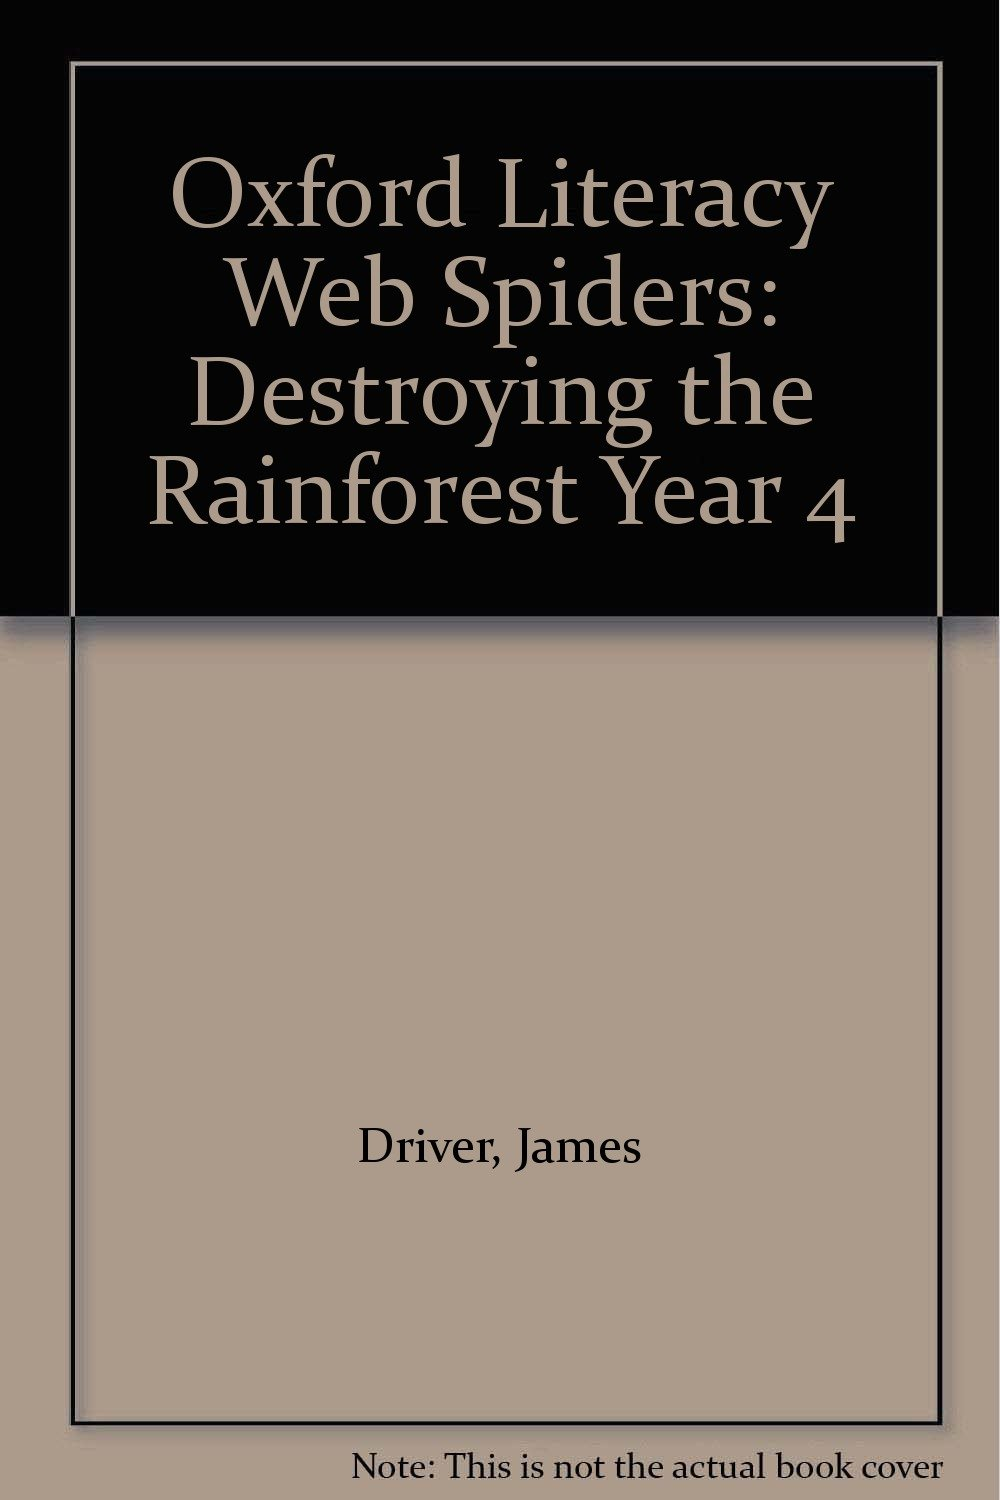 Oxford Literacy Web Spiders: Destroying the Rainforest Year 4 ebook